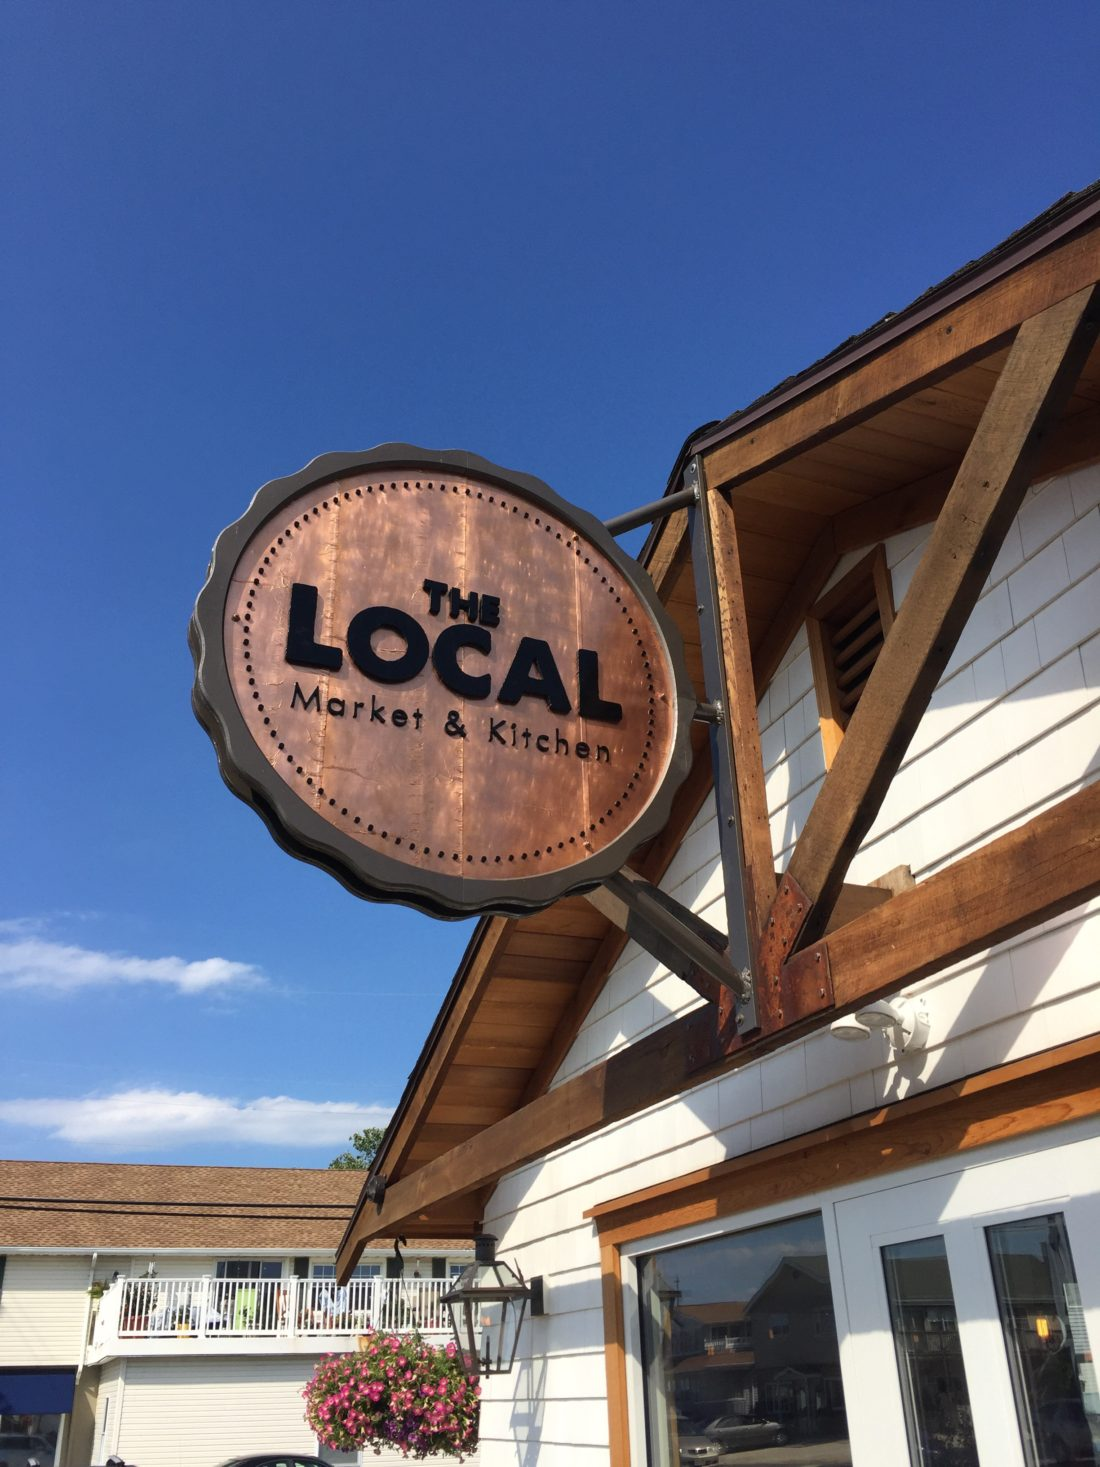 Commercial, dimensional, 3-d mixed media sign and branding for The Local in Ship Bottom on Long Beach Island